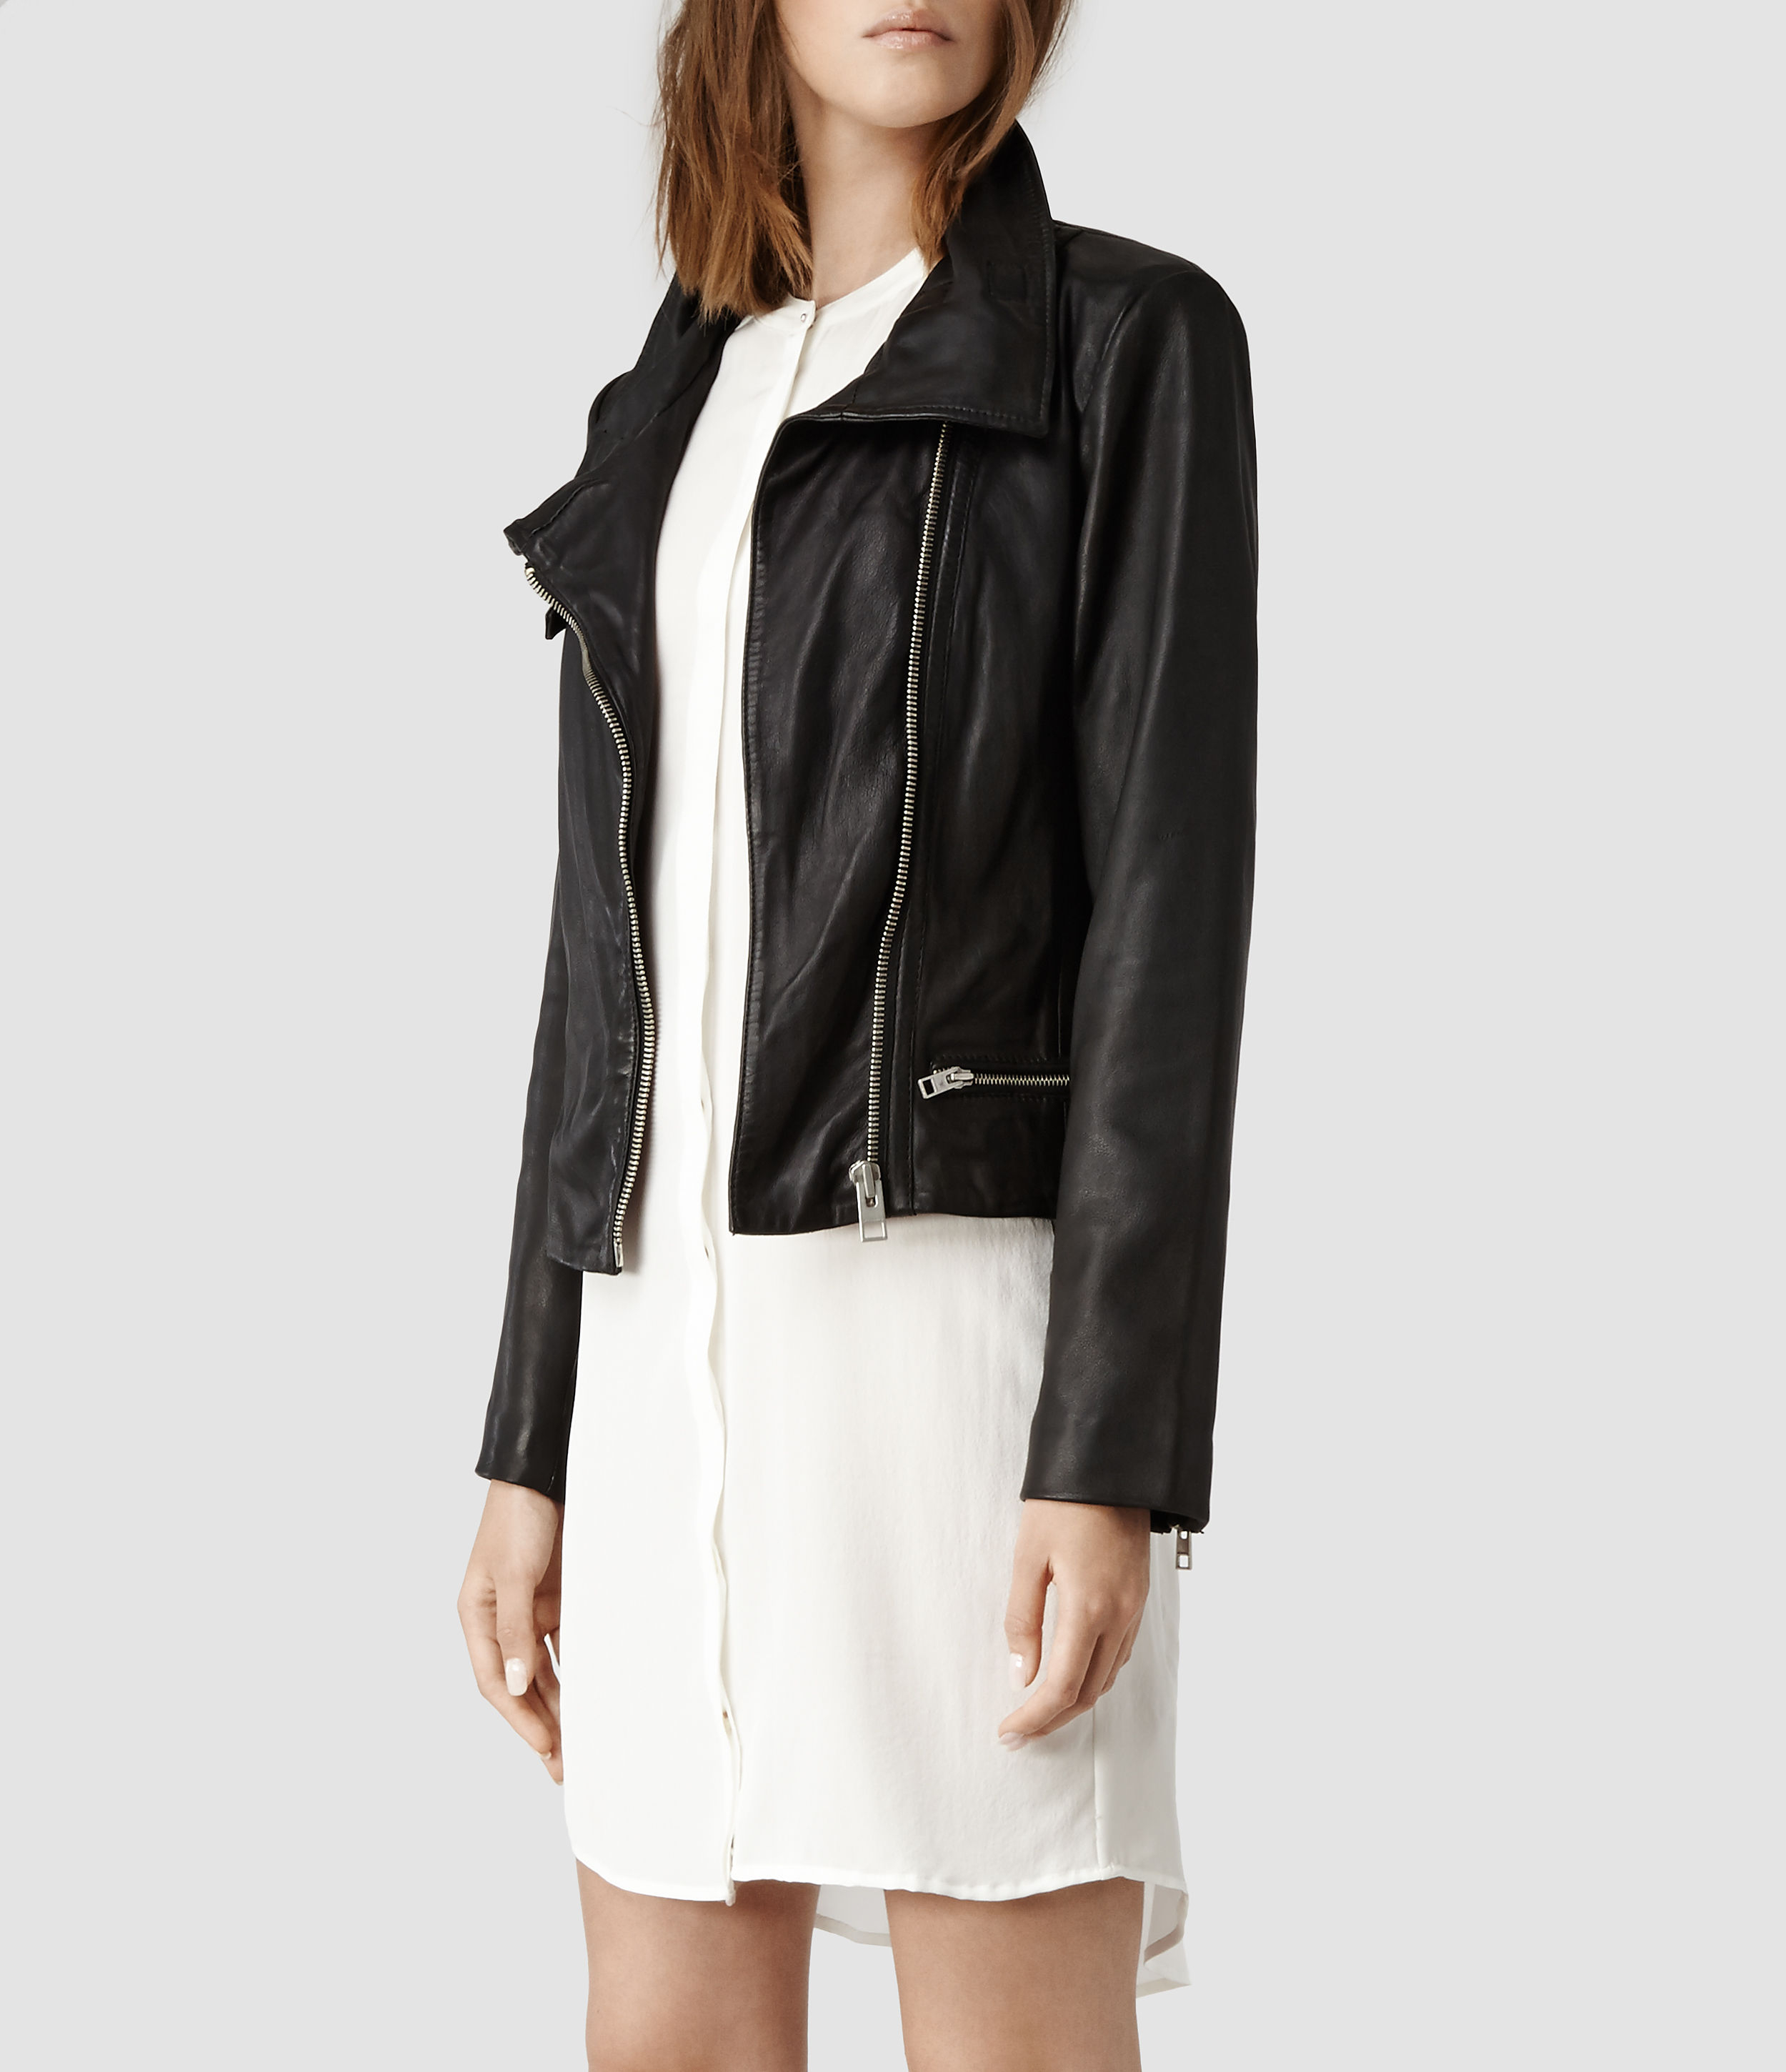 Leather jacket all saints - Be Inspired